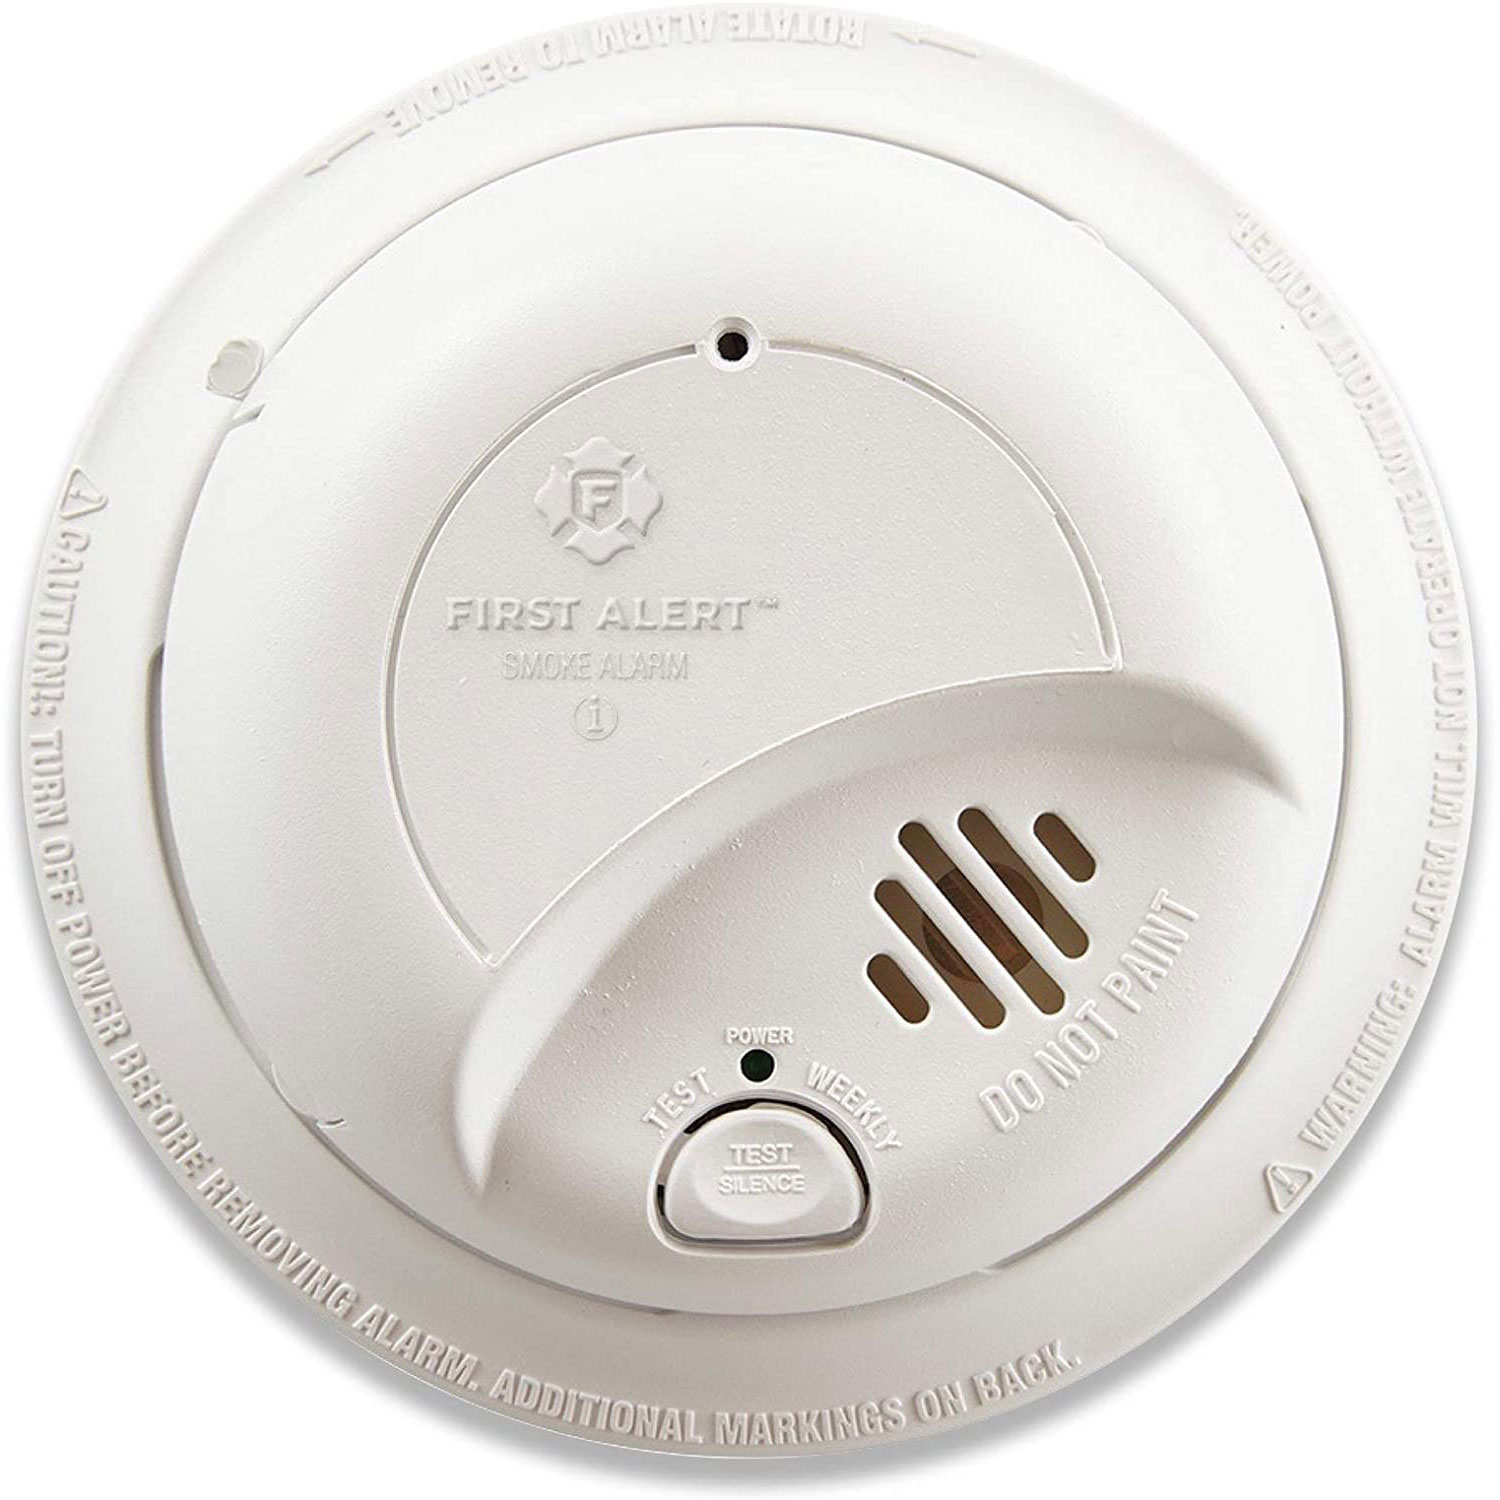 hight resolution of first alert 9120lbl brk brands hardwire smoke alarm with 10 year battery backup first alert store